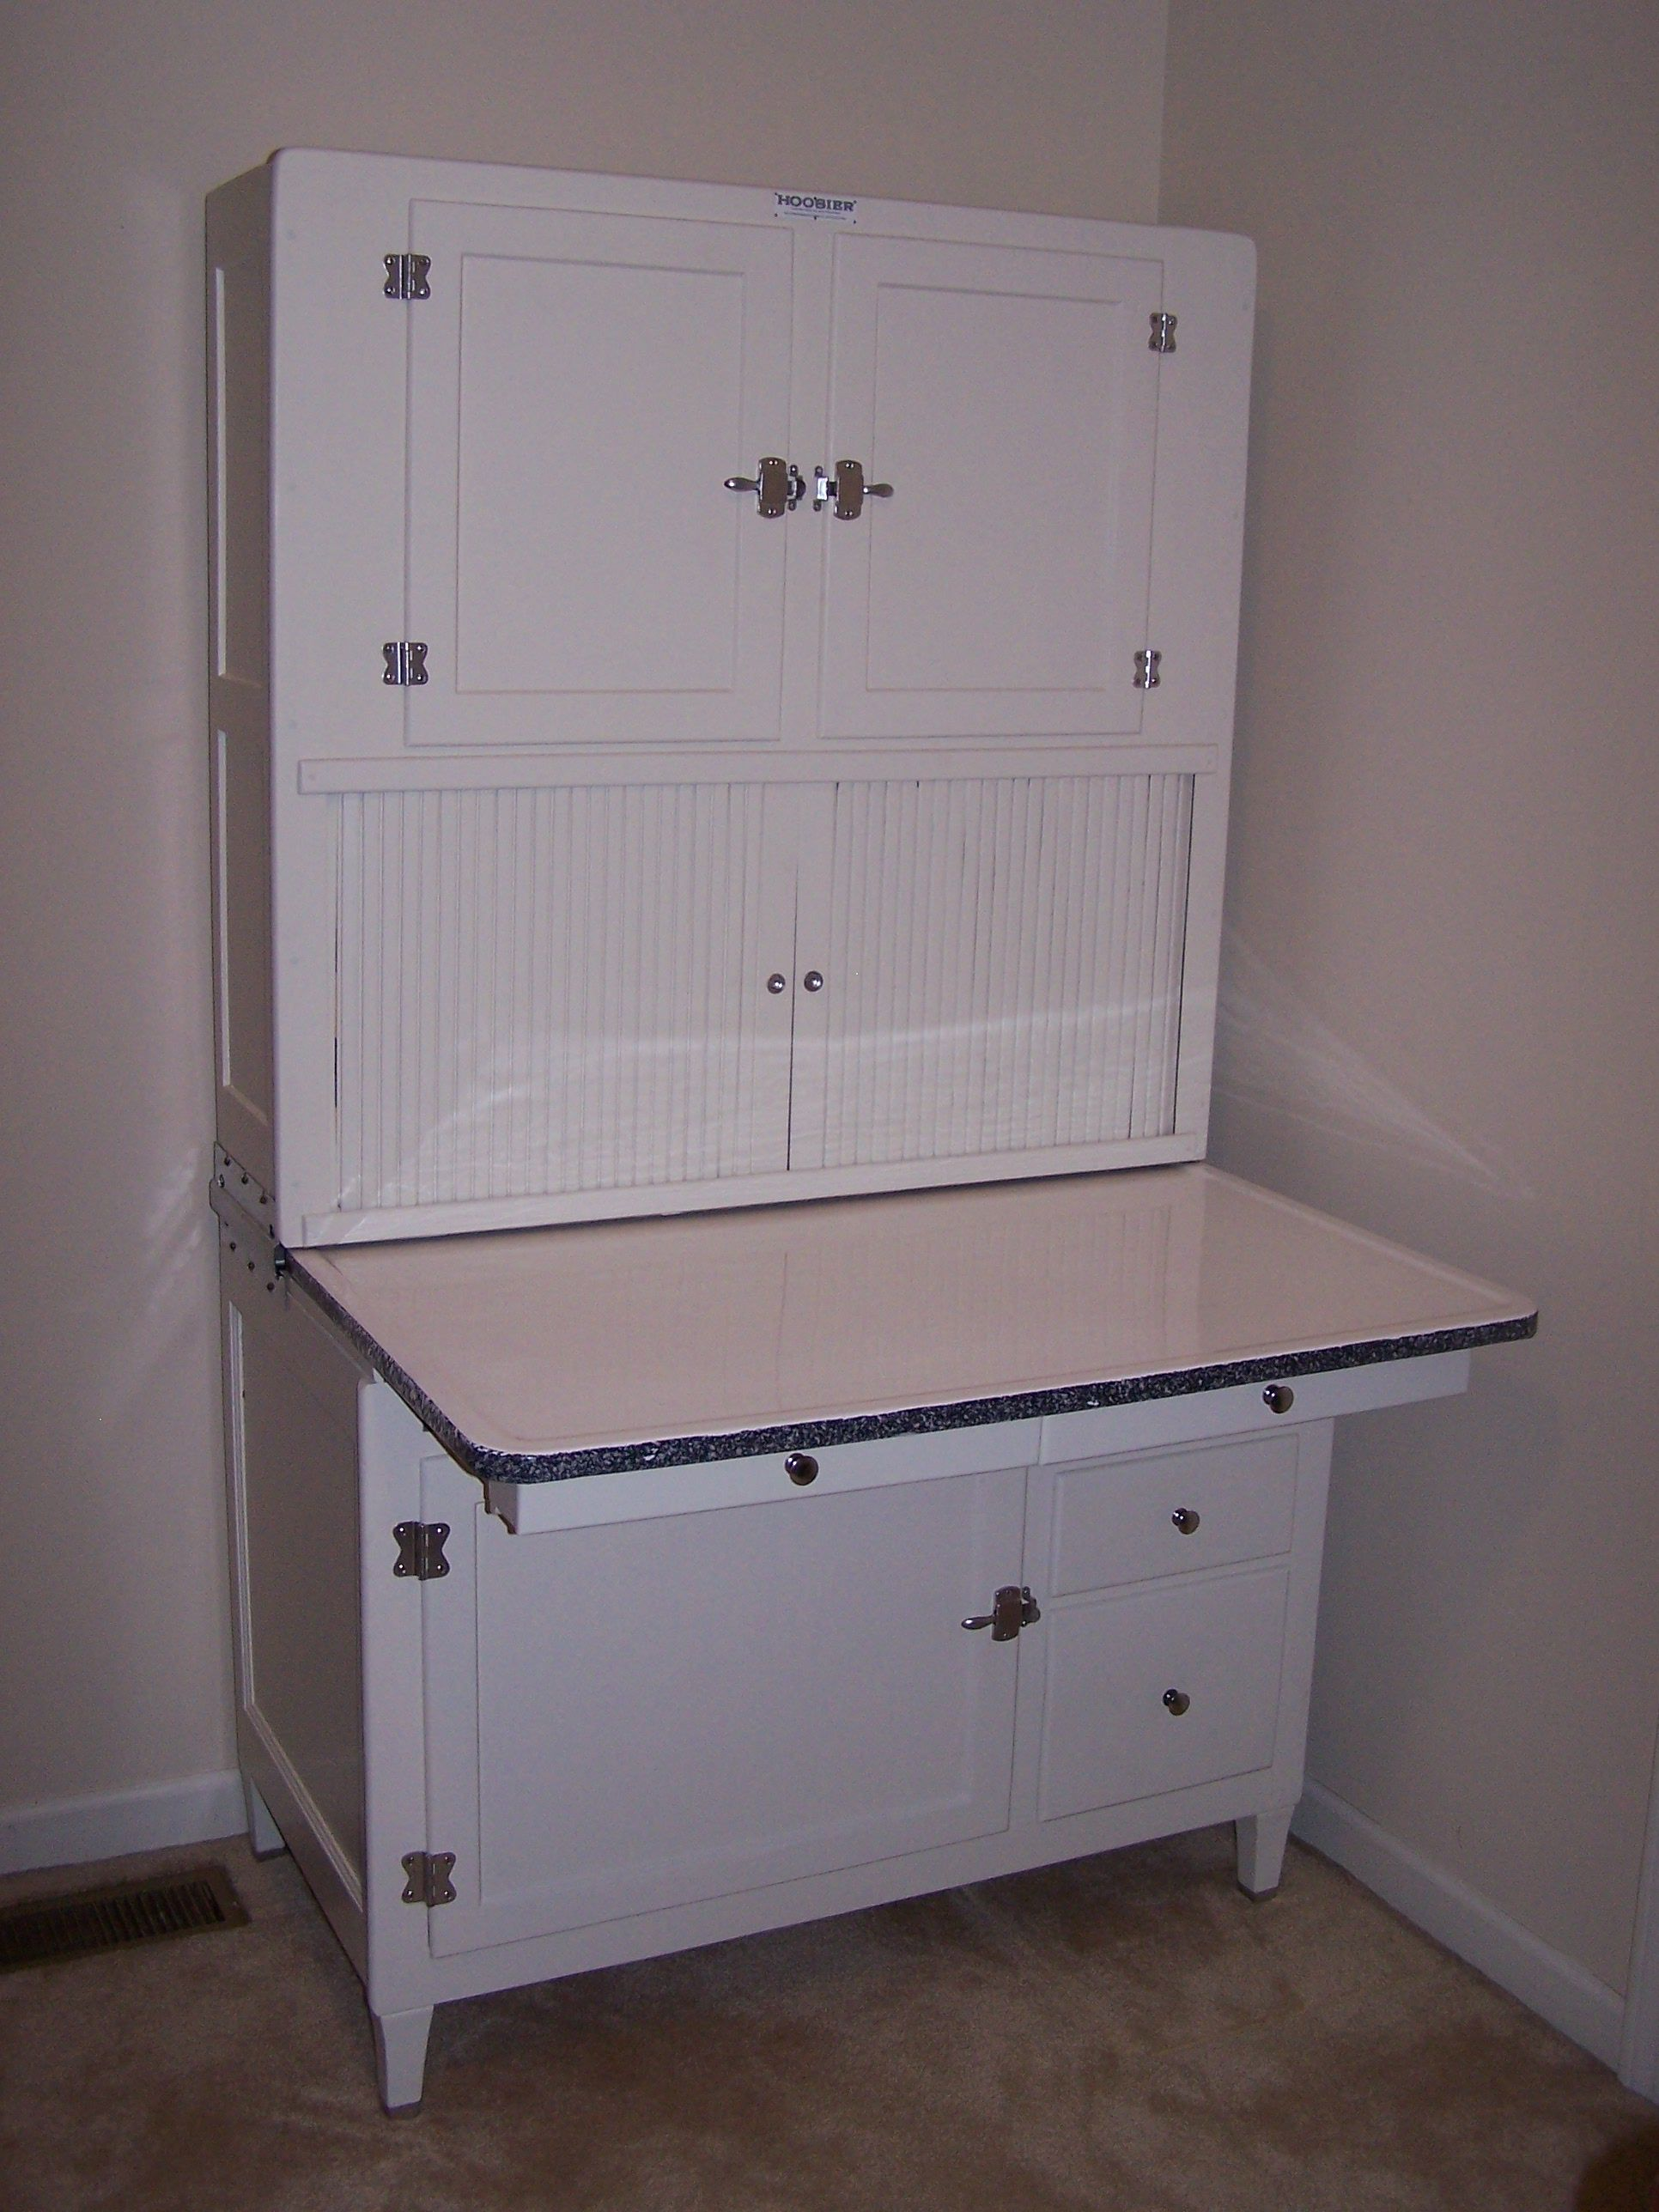 Hoosier Cabinet Refurb Hoosier Cabinet Cabinets For Sale White Furniture Living Room